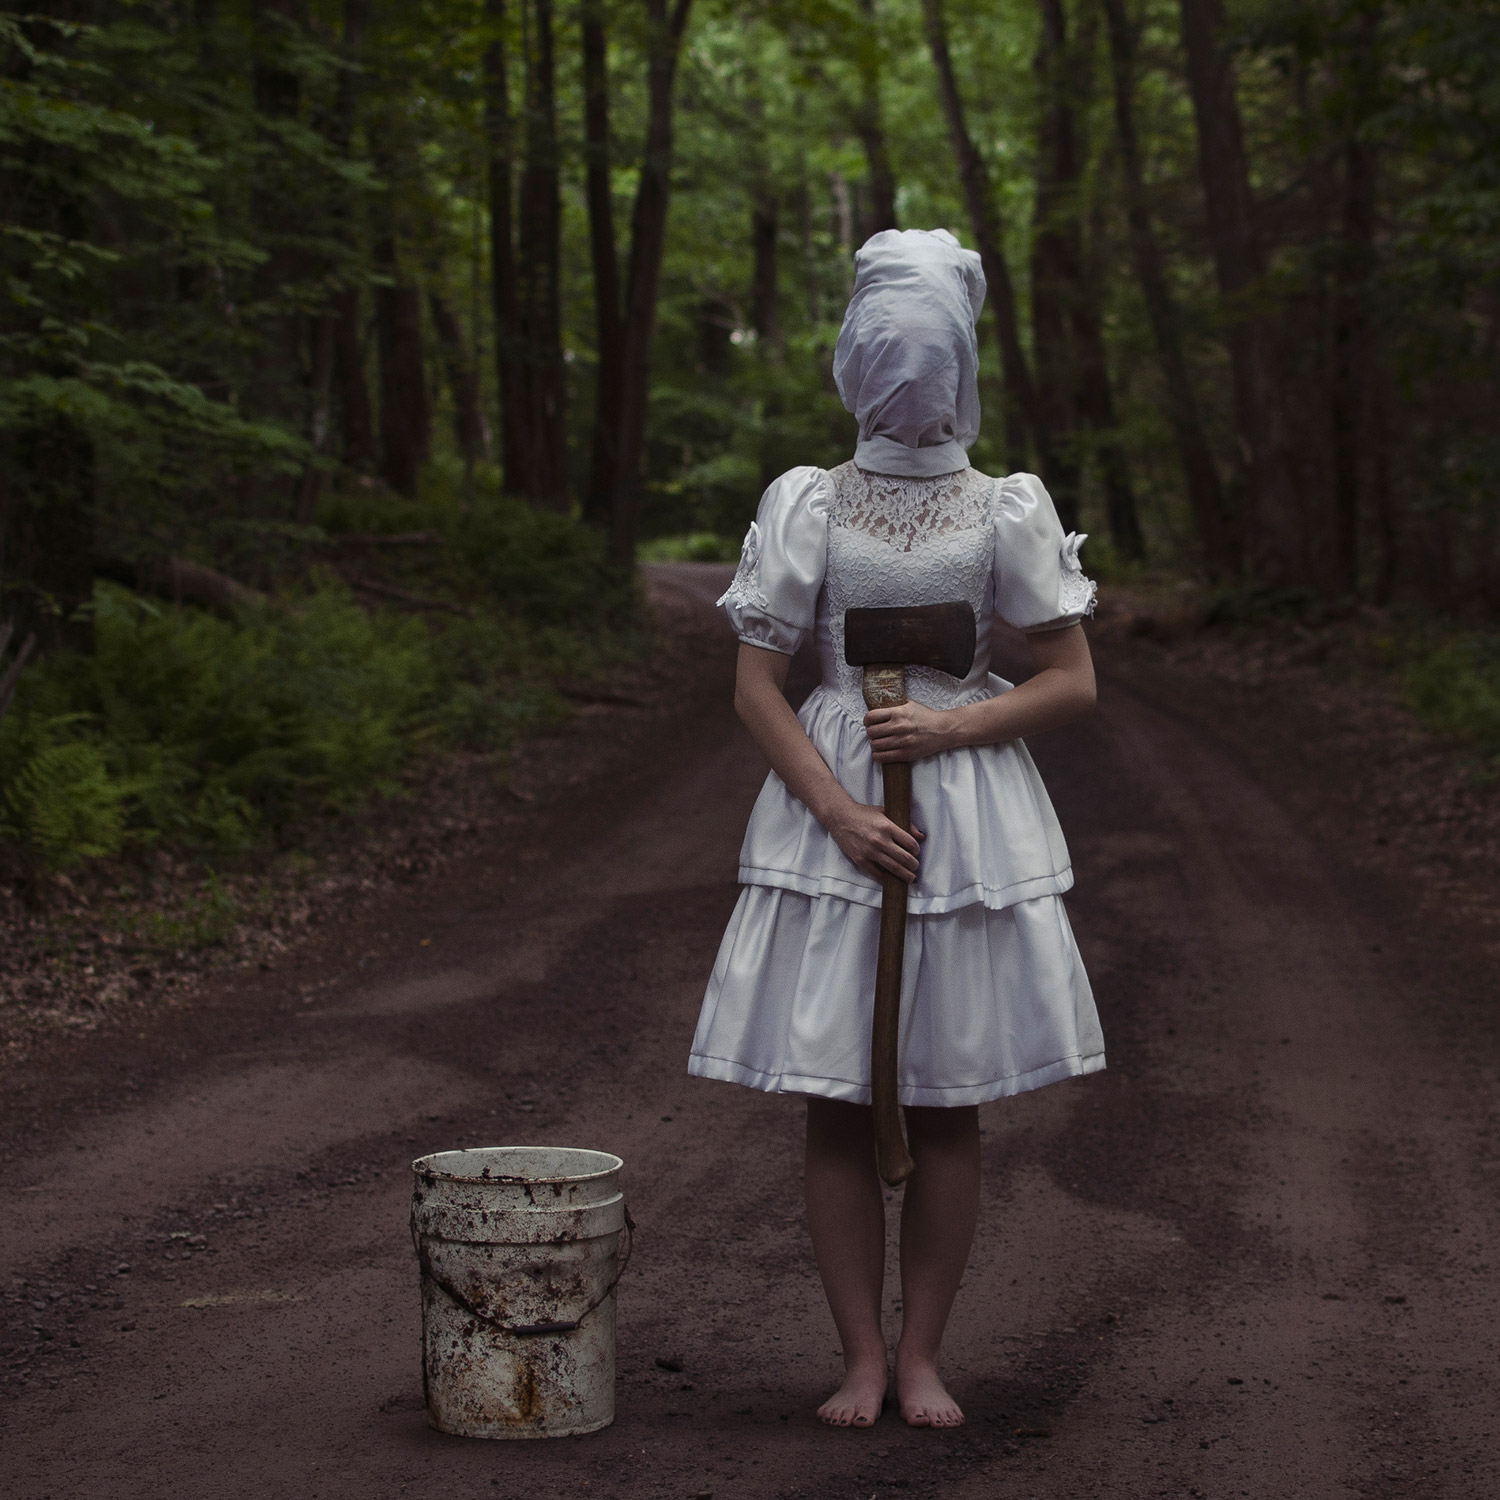 Christopher McKenney - eerie figure in dress on forest road